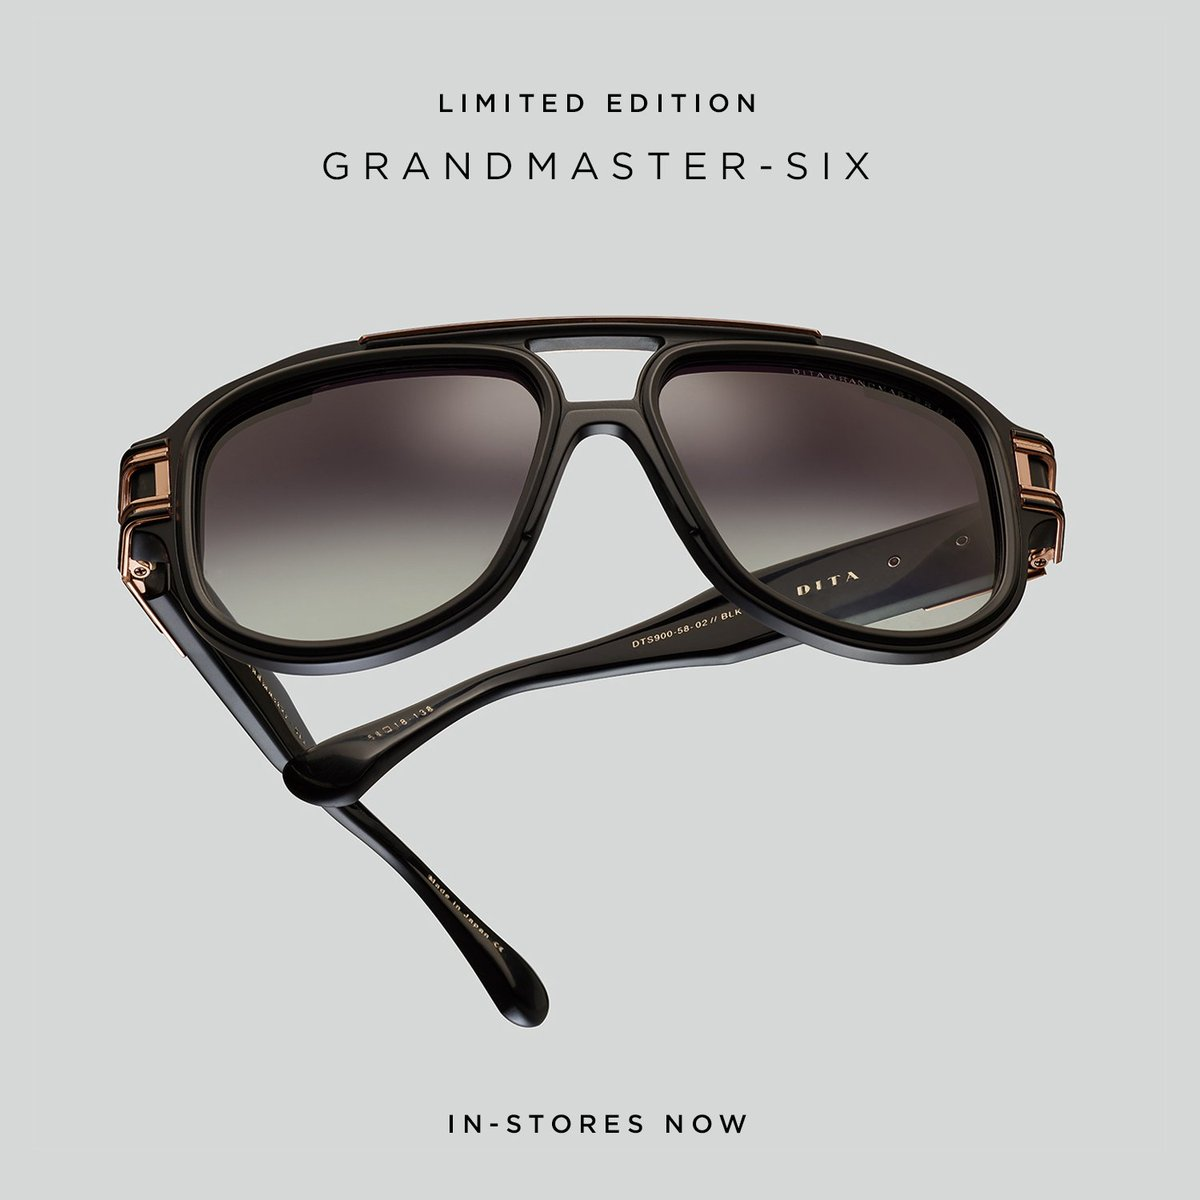 4610f15abd1 The LTD EDITION GRANDMASTER-SIX is available now at DITA flagships...and  rumor has it that this will be the final in the series.